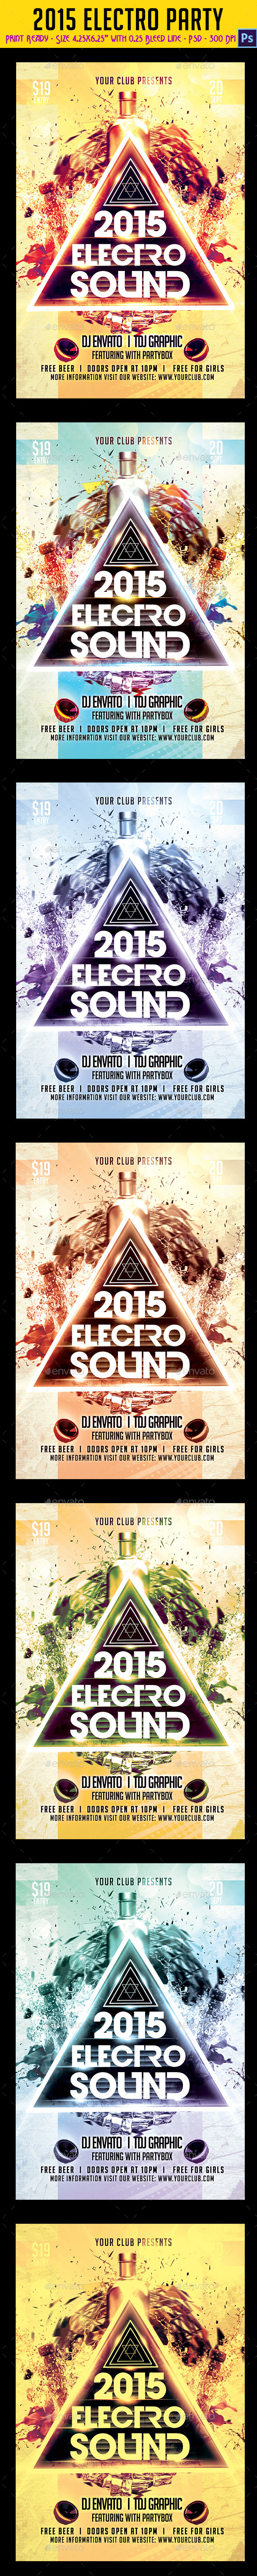 2015 Electro Party Flyer - Clubs & Parties Events